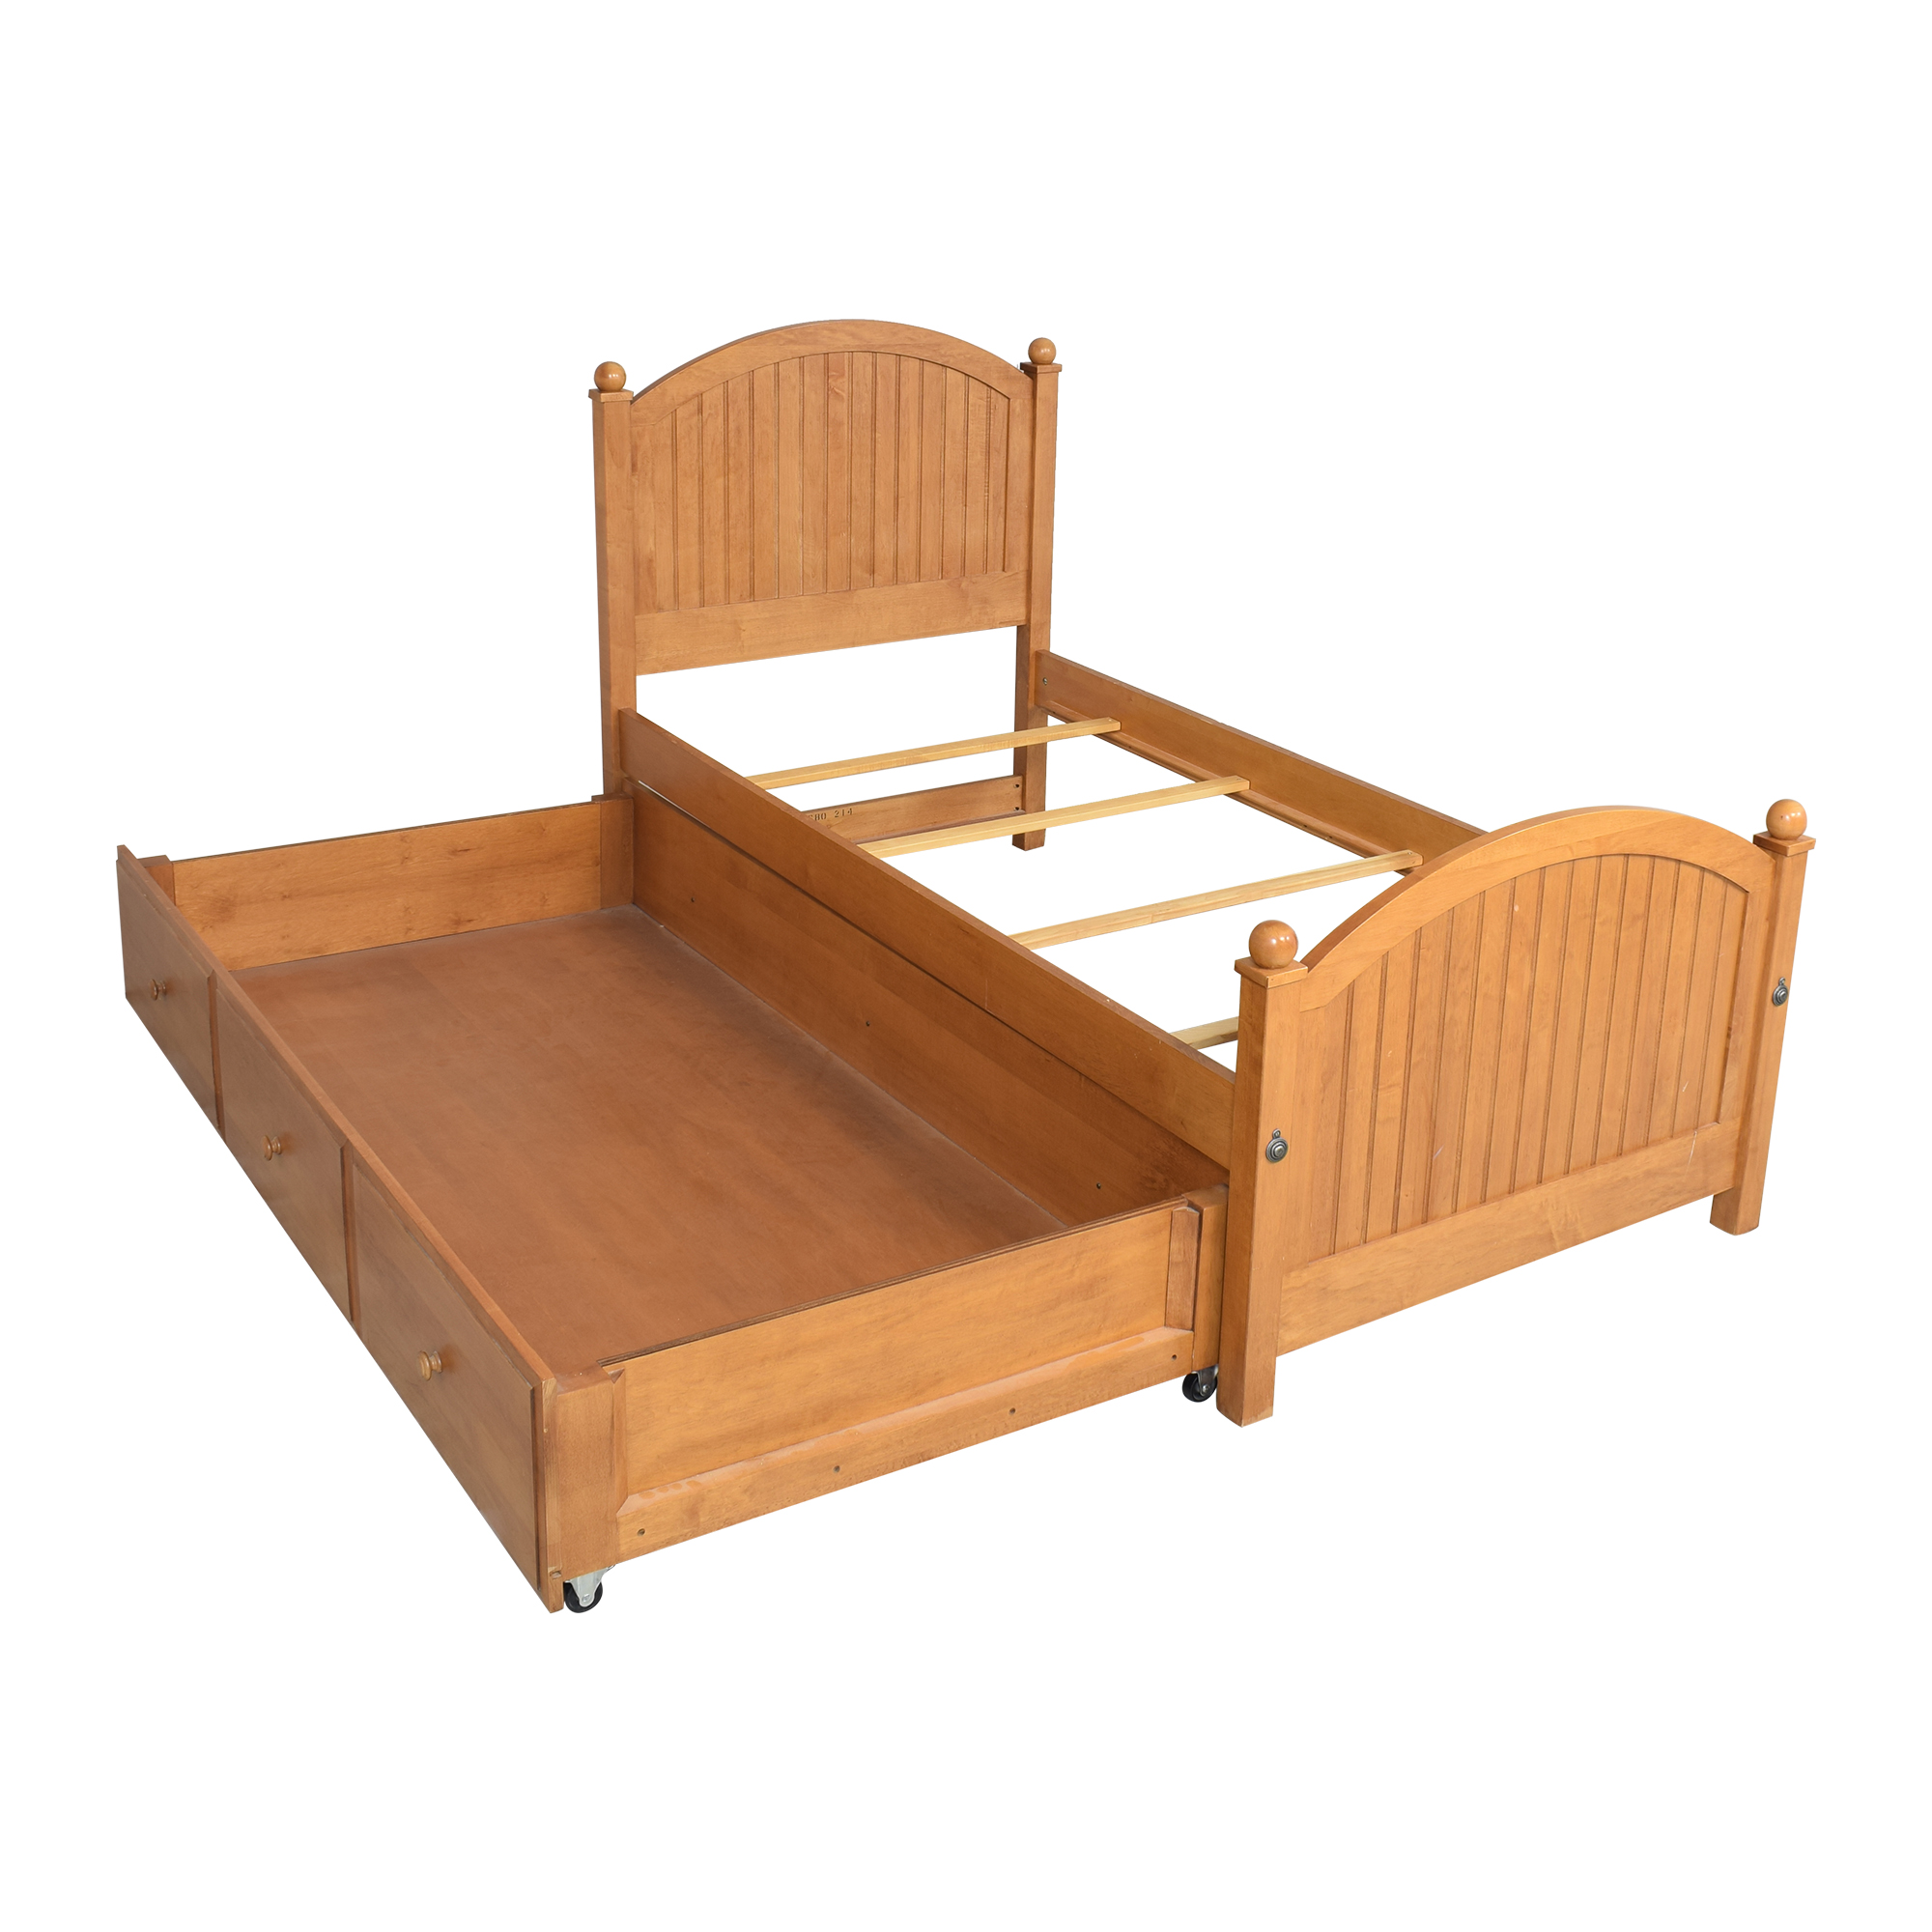 Ethan Allen Country Colors Twin Bed with Trundle / Beds